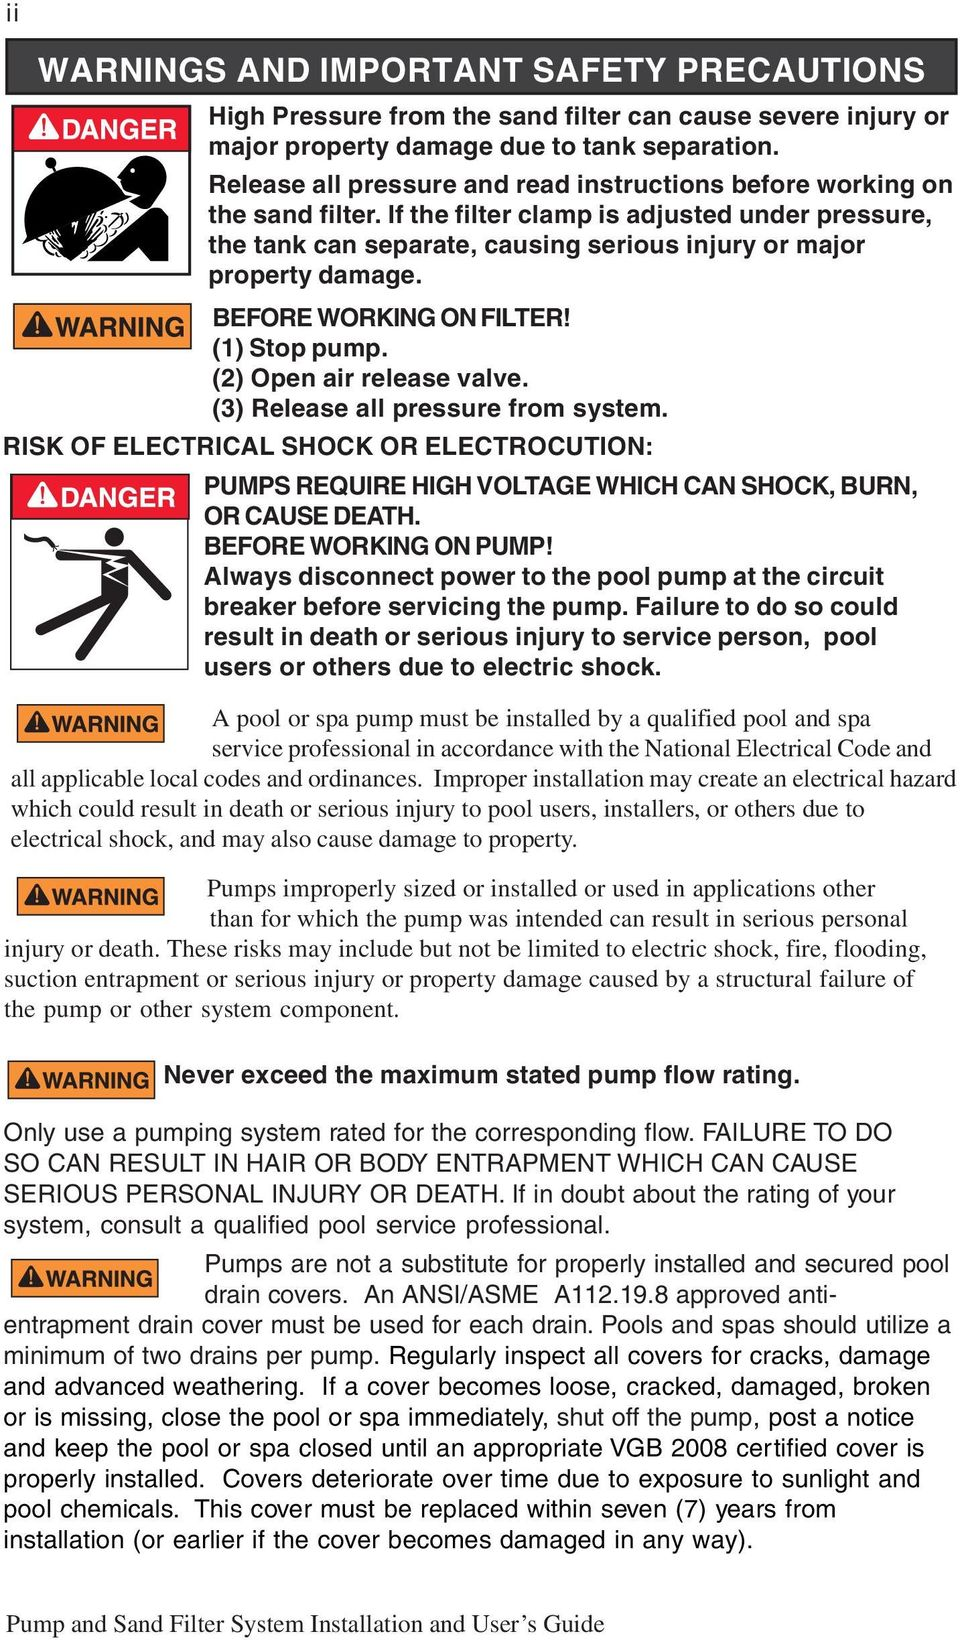 RISK OF ELECTRICAL SHOCK OR ELECTROCUTION: PUMPS REQUIRE HIGH VOLTAGE WHICH CAN SHOCK, BURN, OR CAUSE DEATH. BEFORE WORKING ON PUMP!